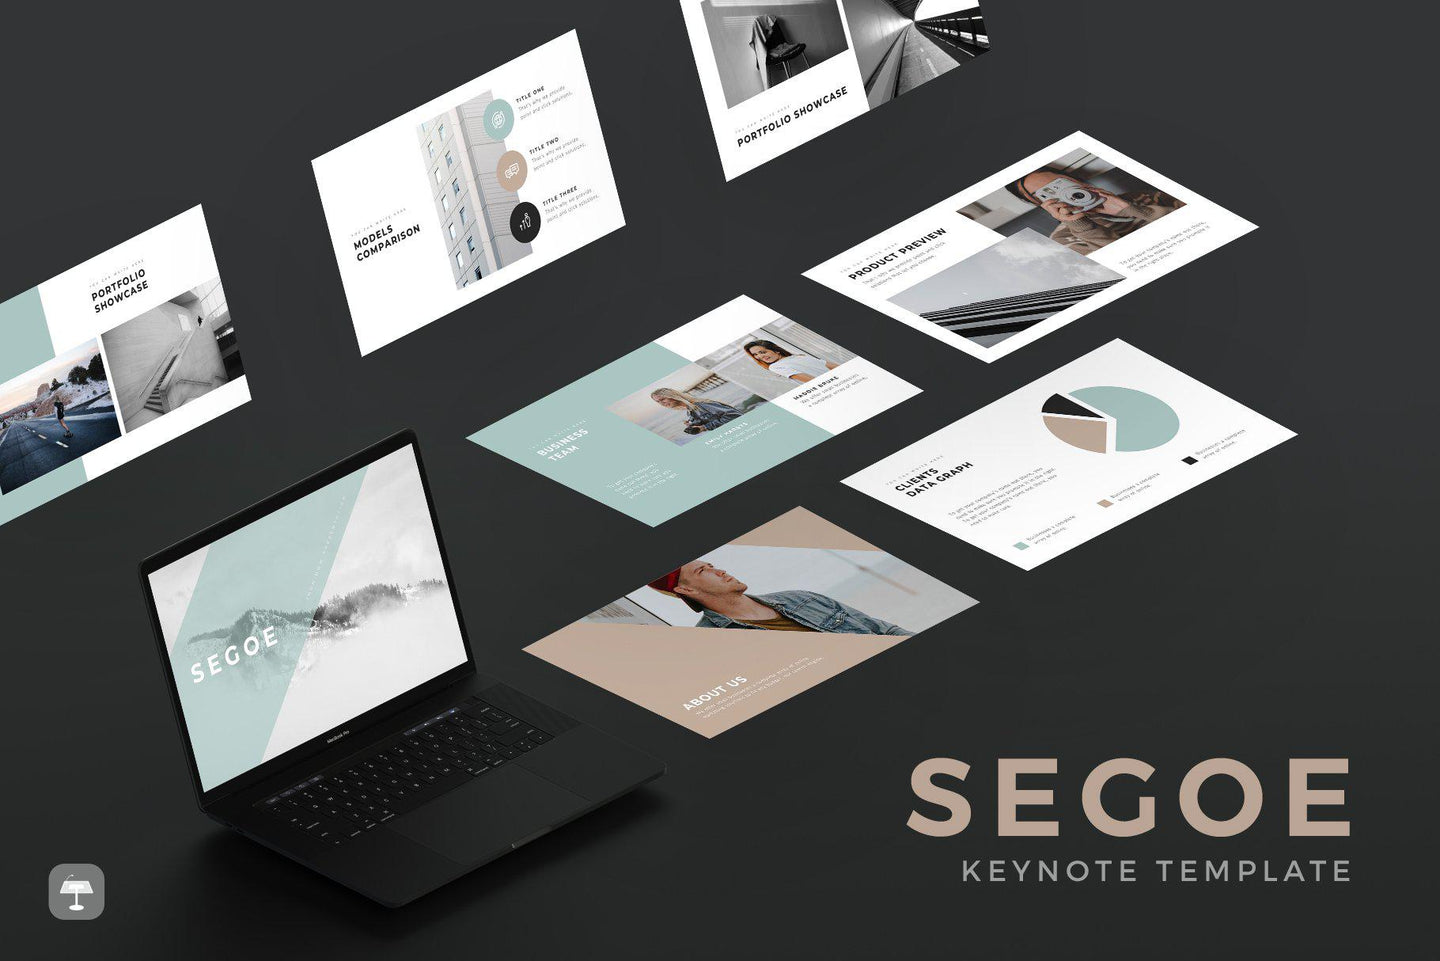 Segoe Keynote Template - TheSlideQuest